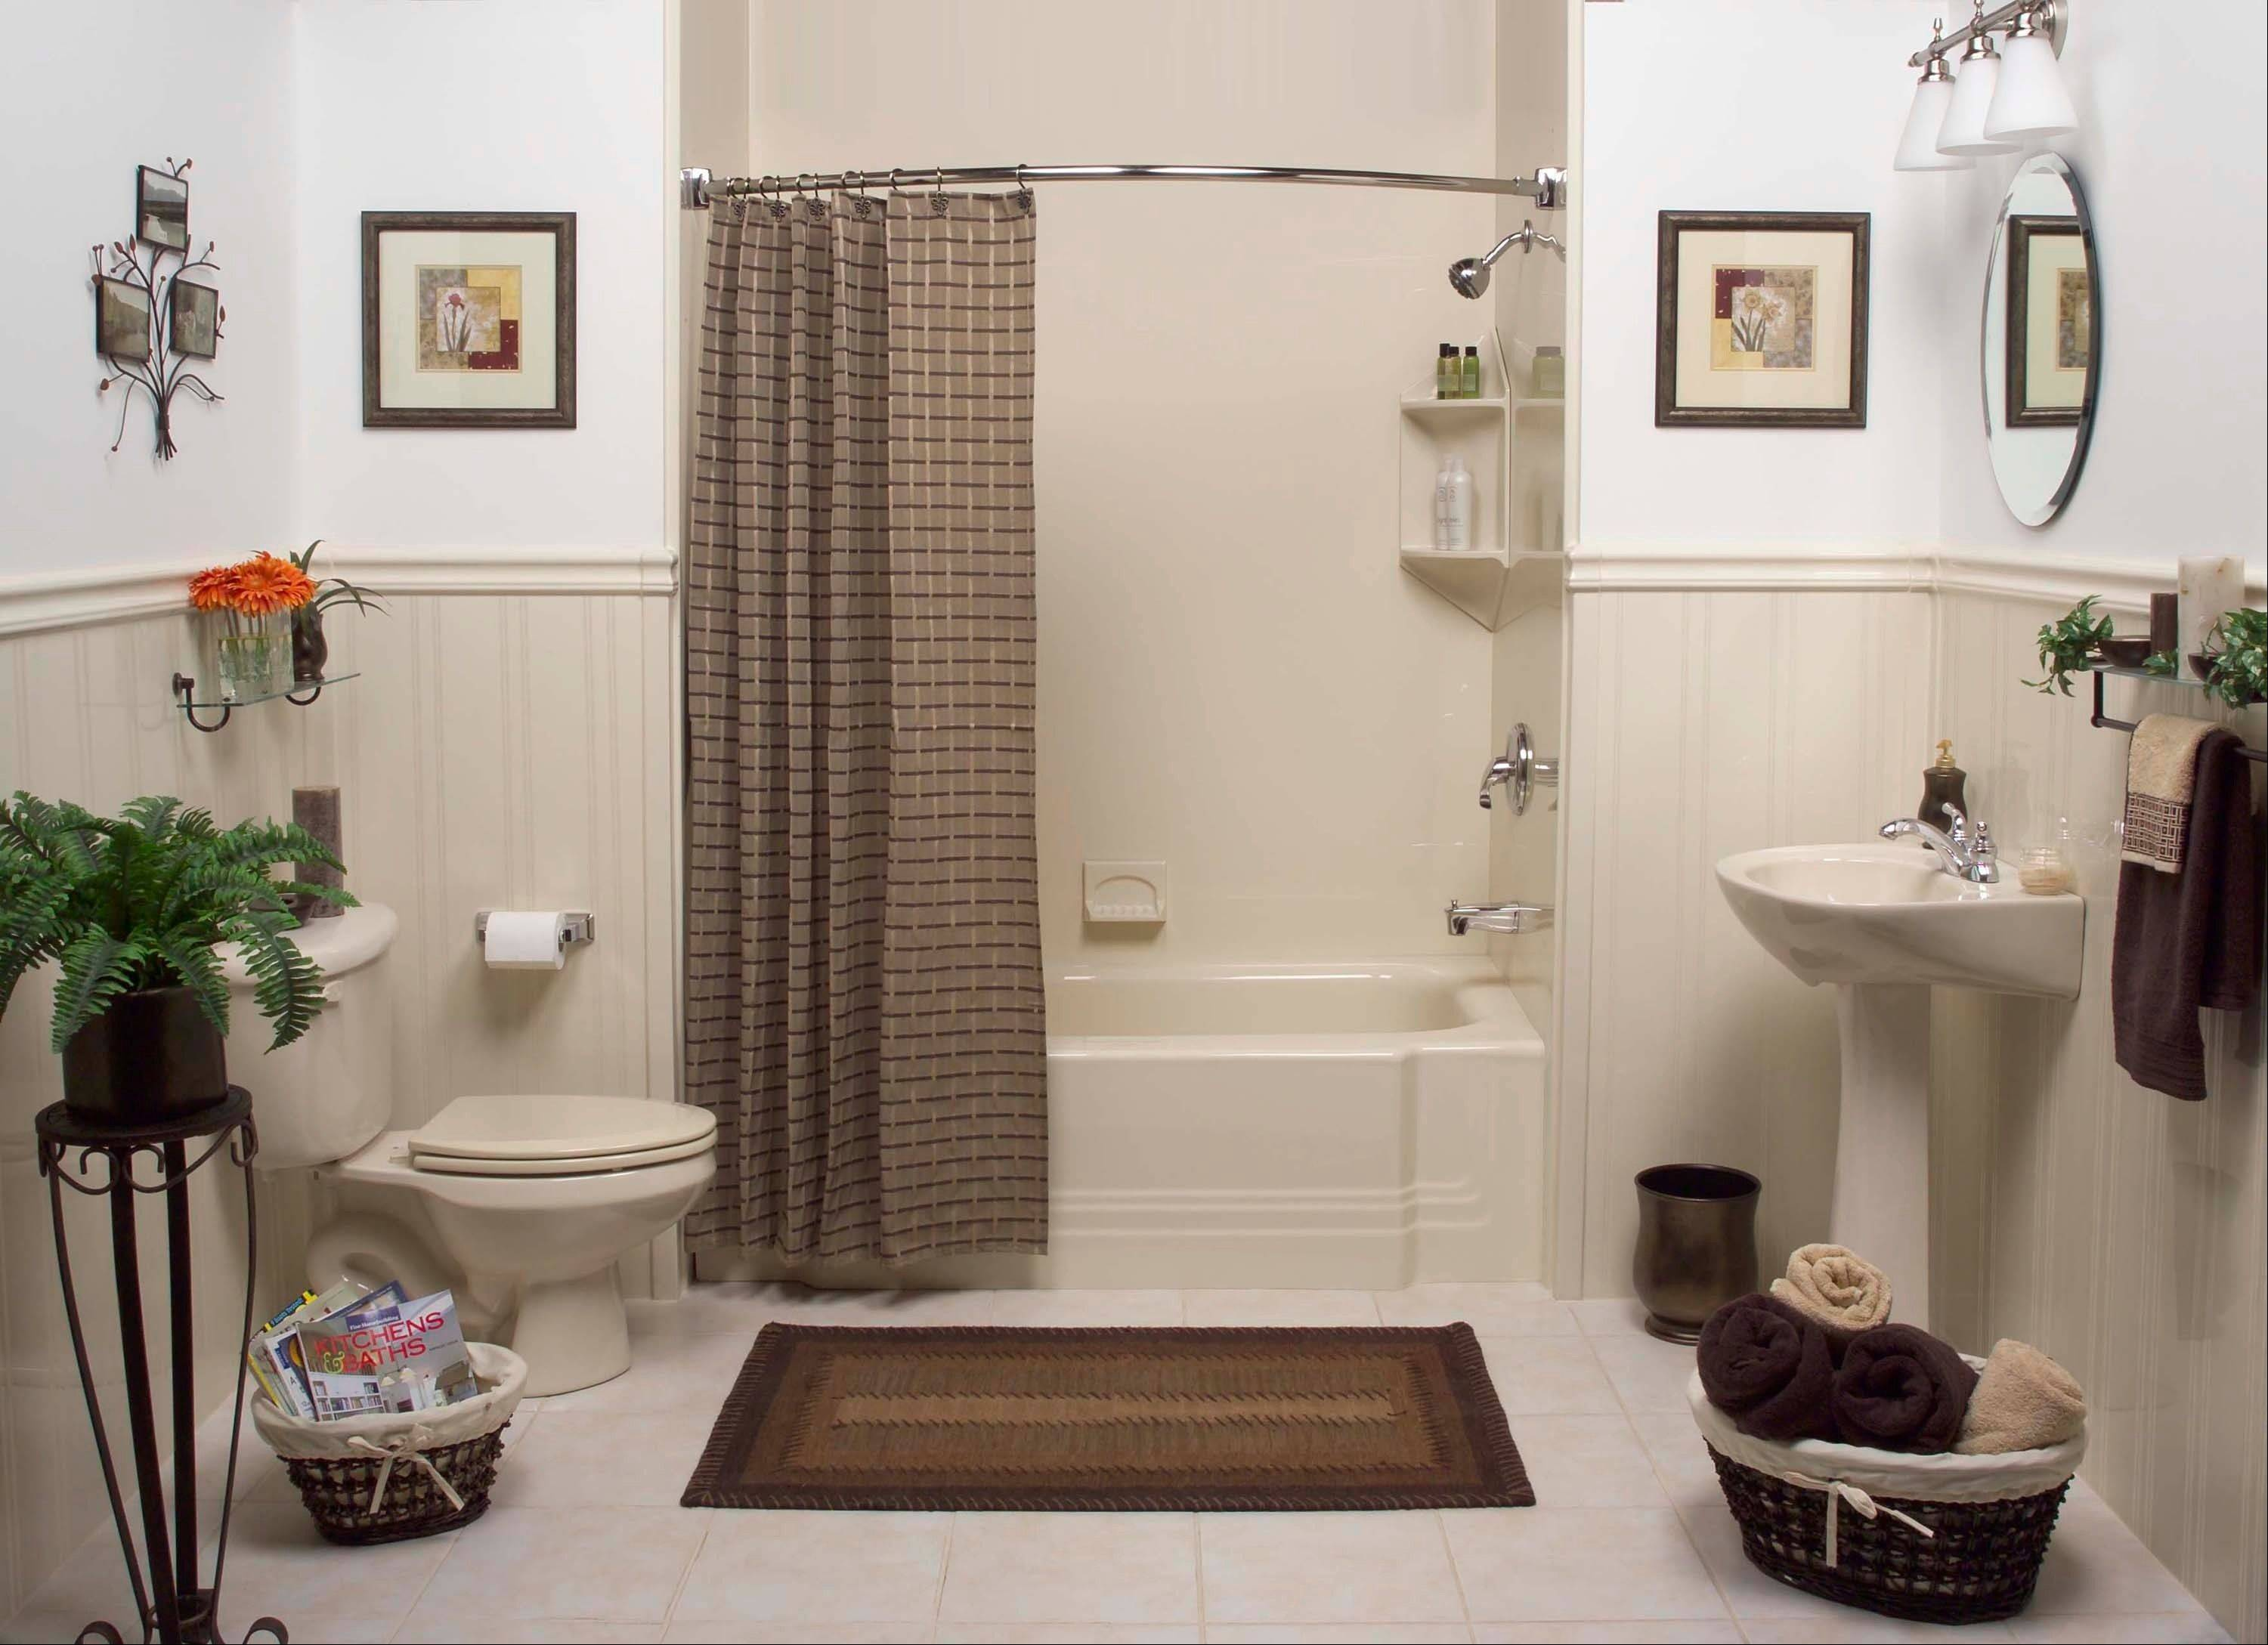 A liner that slips over the existing tub, as well as wall panels, create a near-instant update of an aging bathroom.